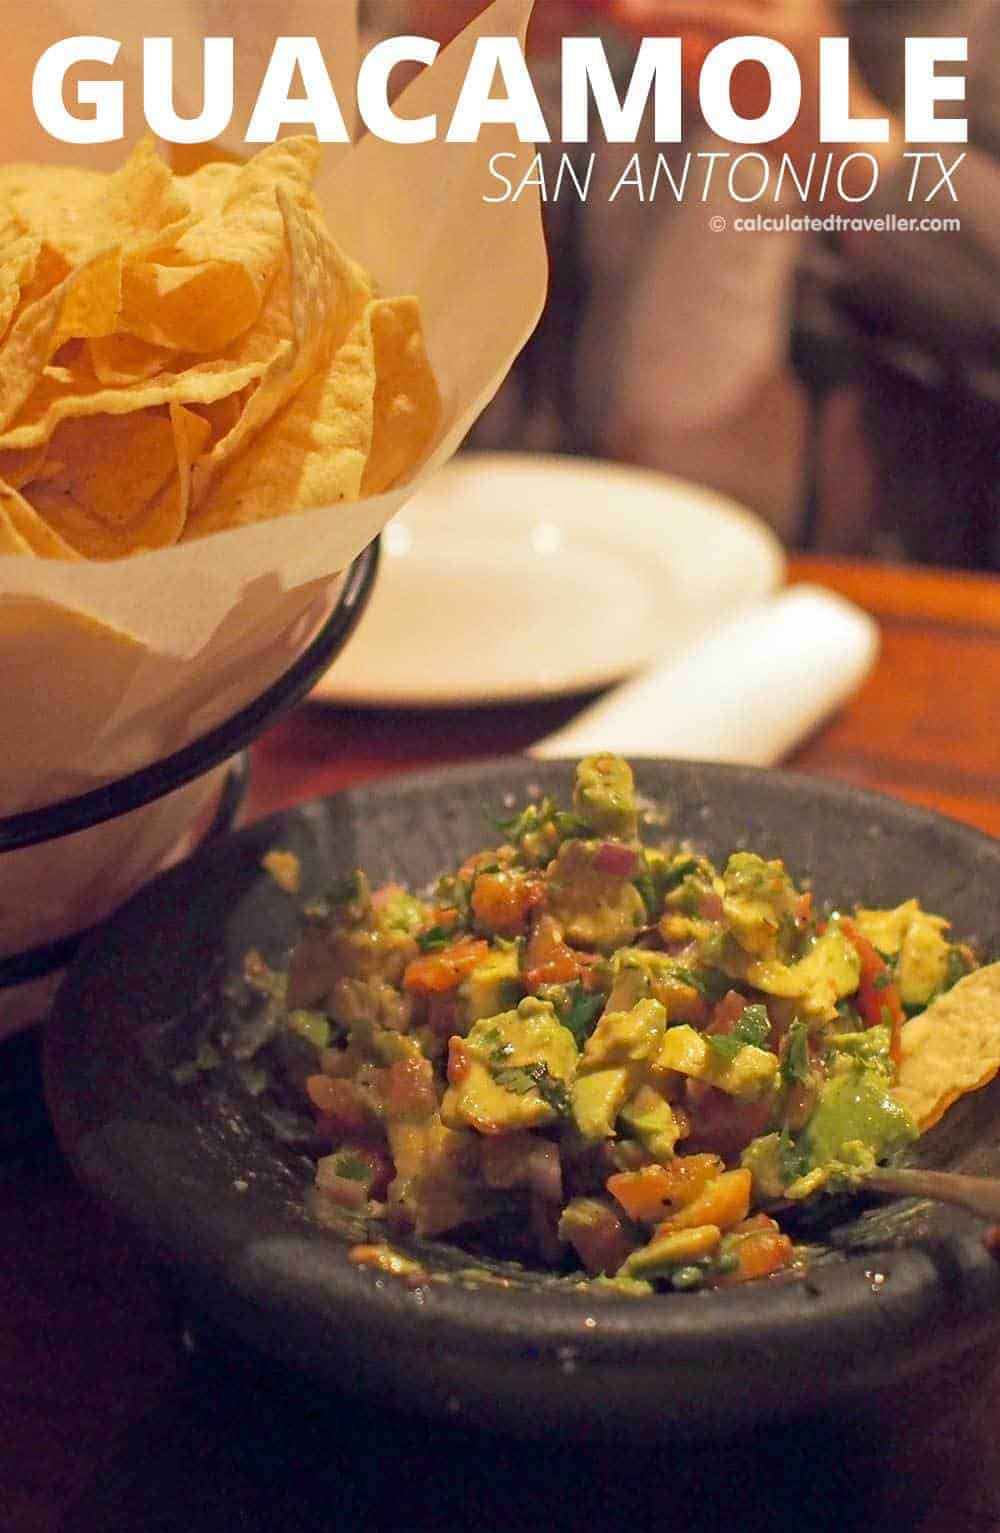 Getting my Guacamole on in San Antonio Texas - Boudro's San Antonio Texas Bistro - Boudro's Guacamole Recipe